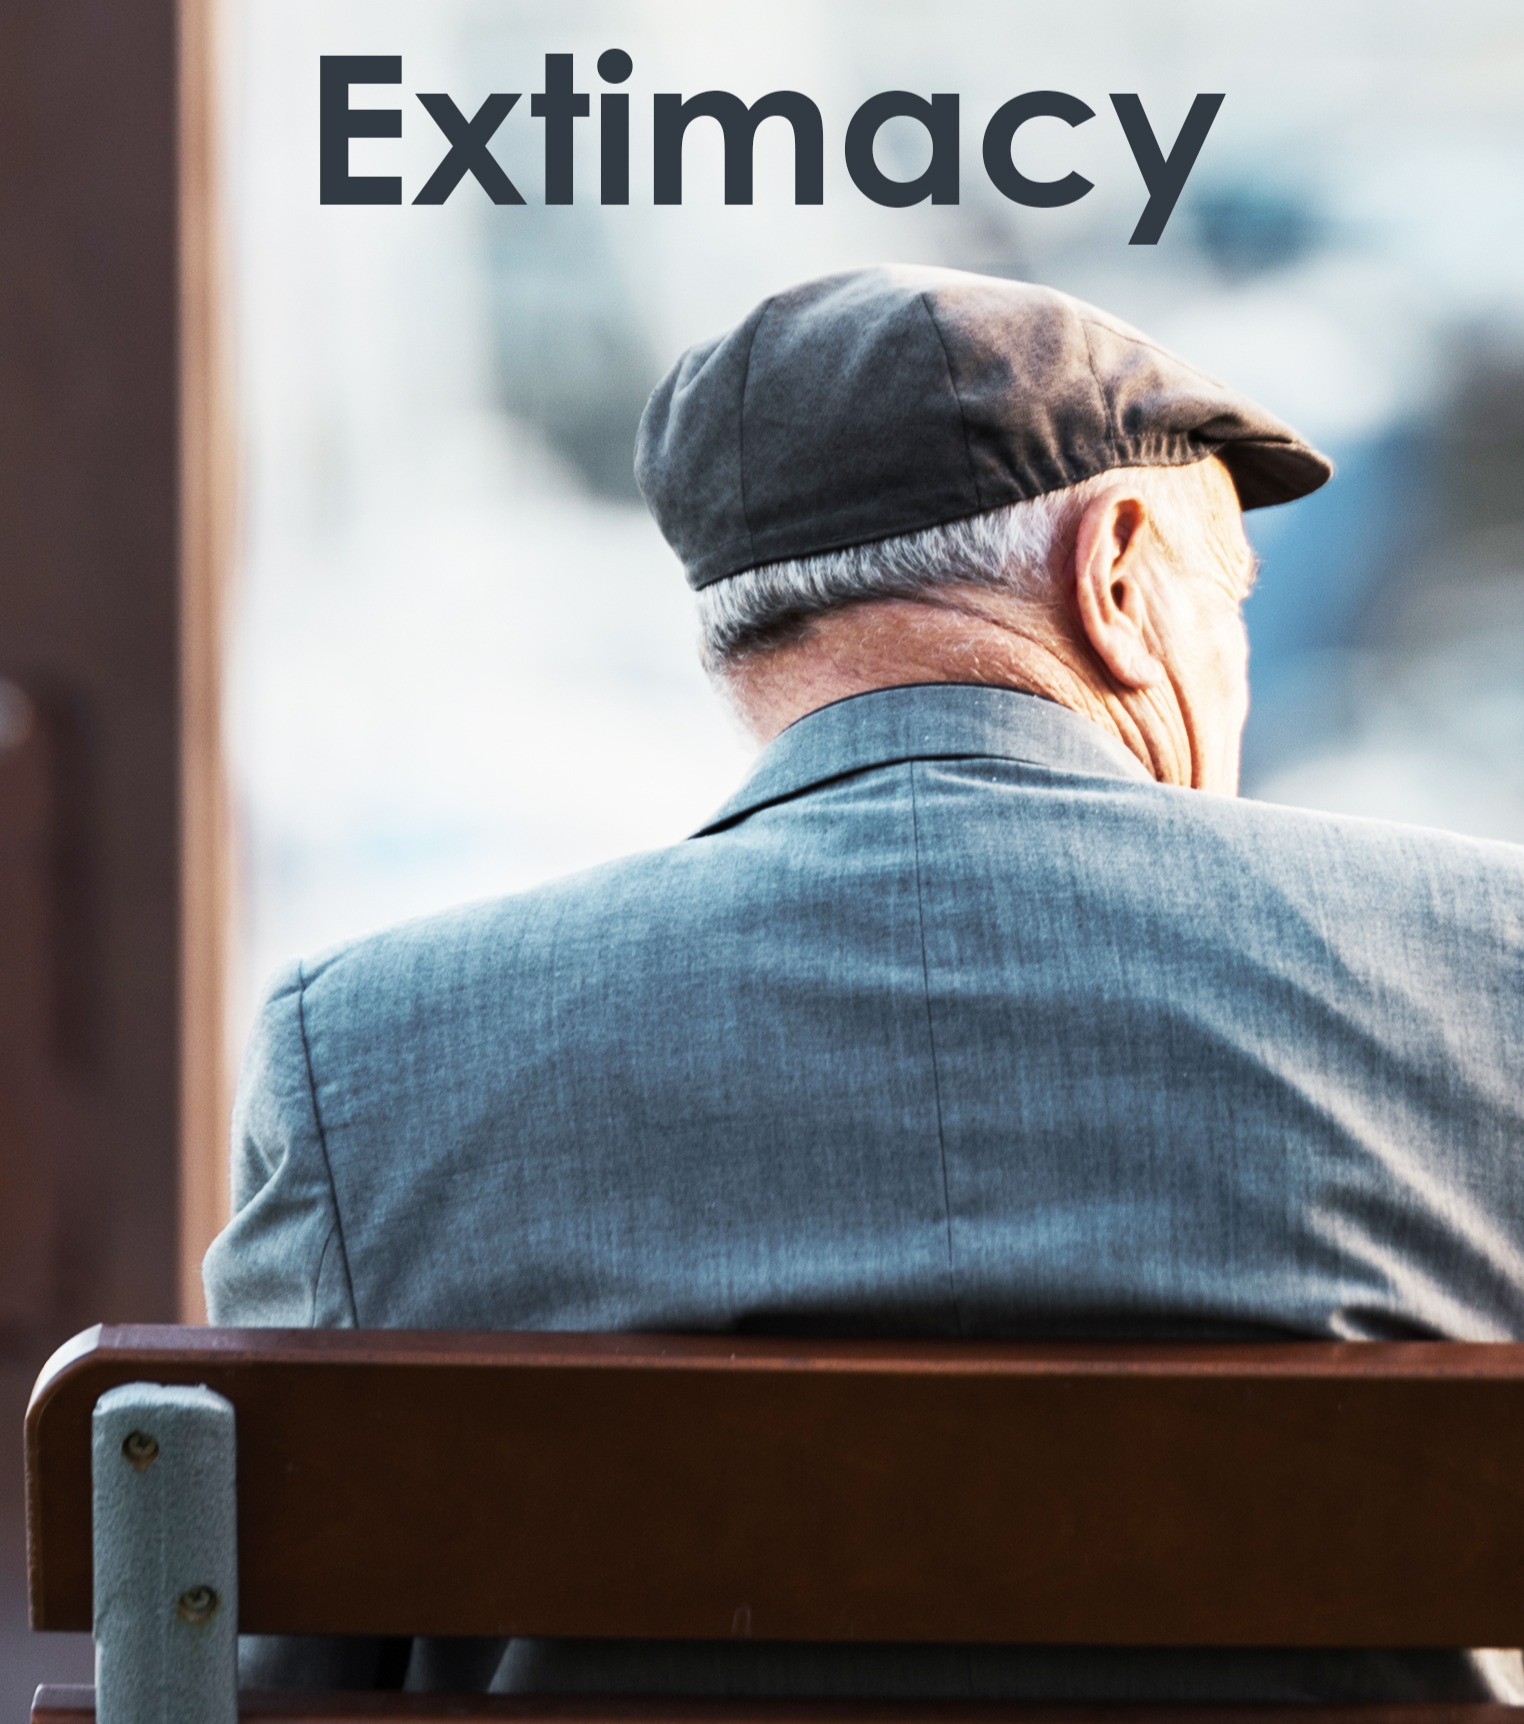 Extimacy%20Book%20Cover_edited